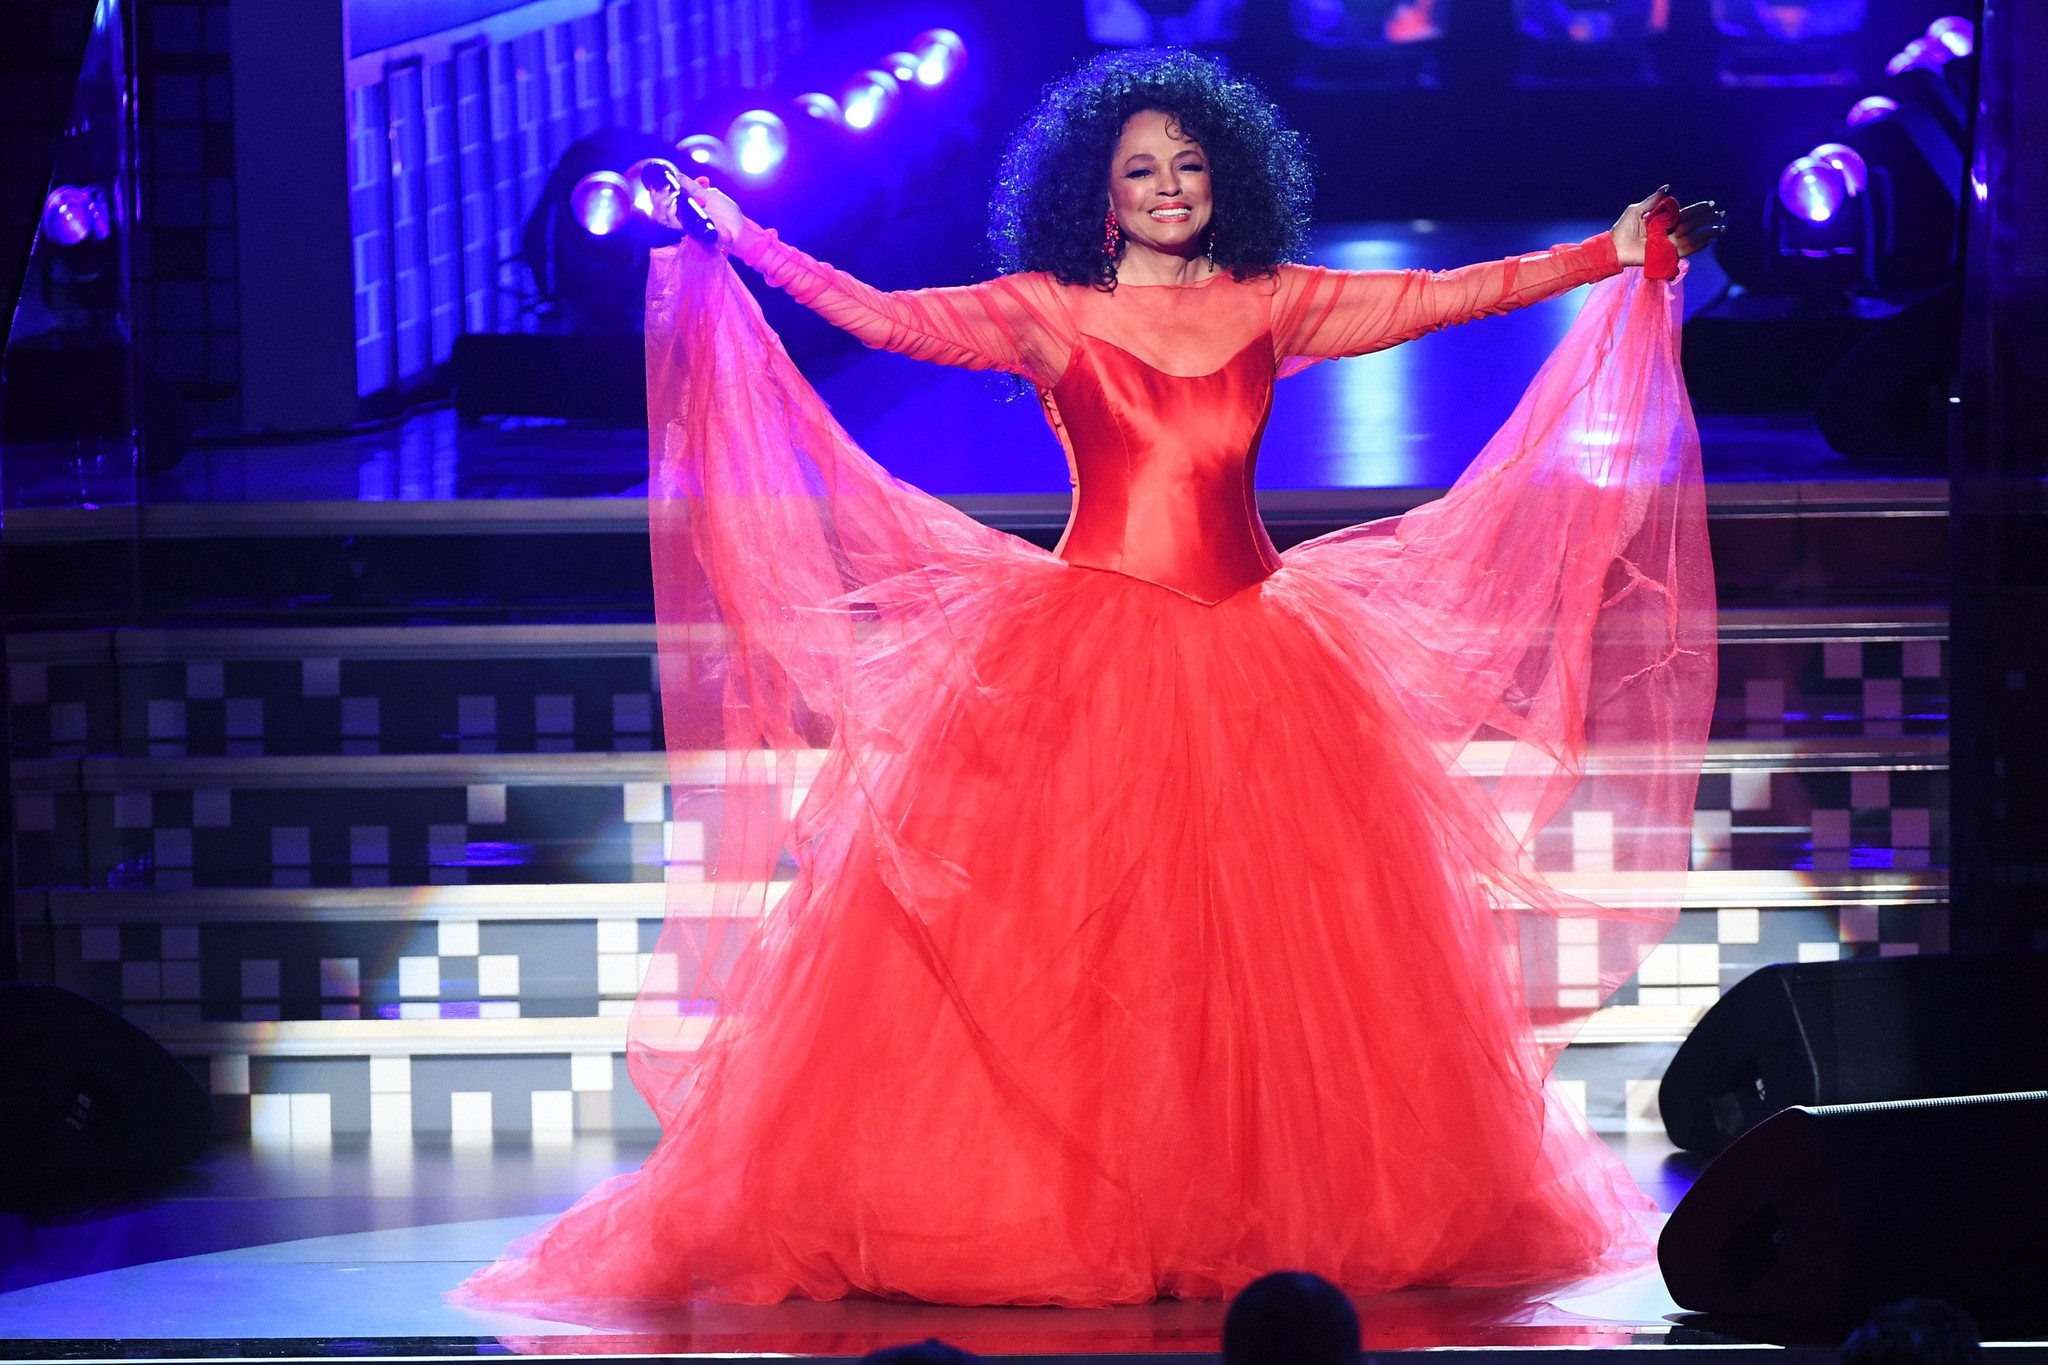 Diana Ross' 'Love Hangover' is #1 on Billboard nearly 45 years after first topping charts